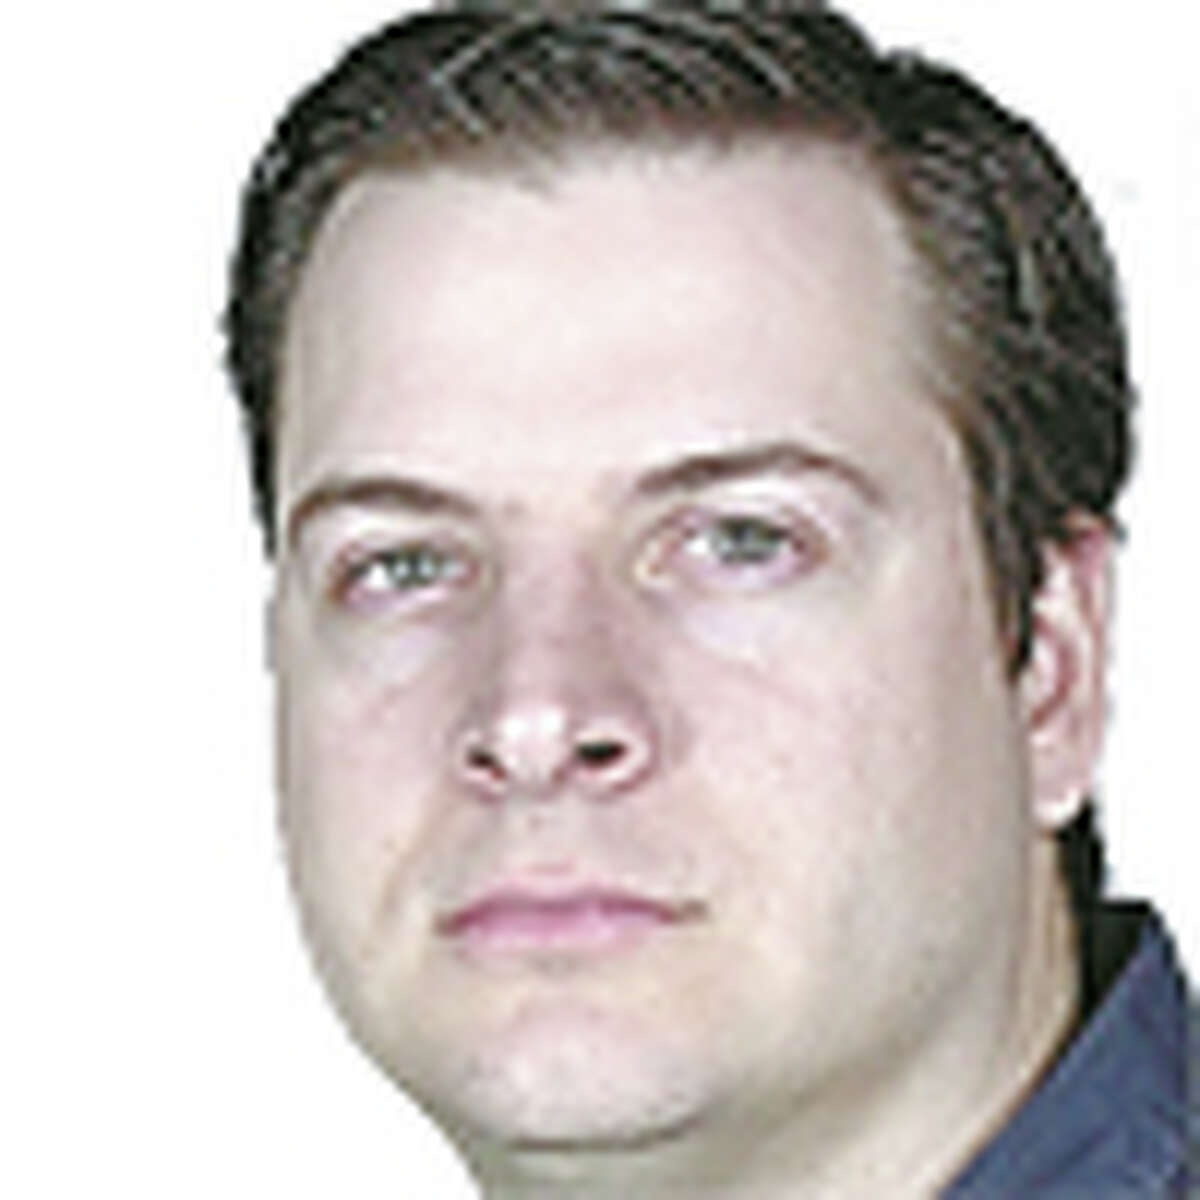 Sports editor Len Hayward covers area sports teams and auto racing for The Reporter-Telegram.